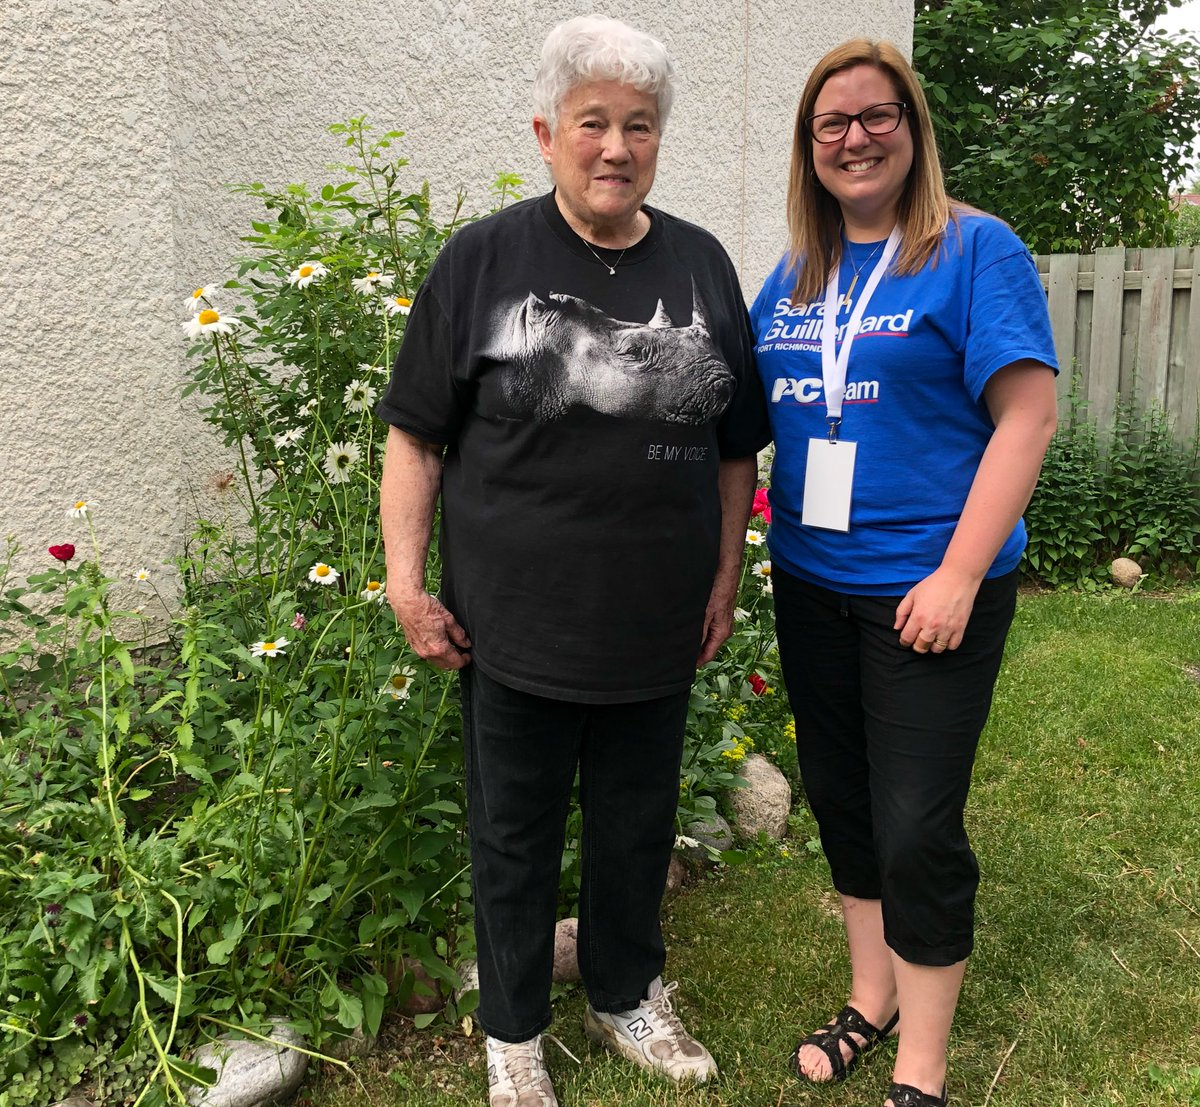 test Twitter Media - A wonderful night door knocking with my energetic team!  Ruth showed me her amazing garden with beautiful Daisies—she encouraged me to take the time to stop & smell the flowers! #mbpoli https://t.co/xqM10REvgx